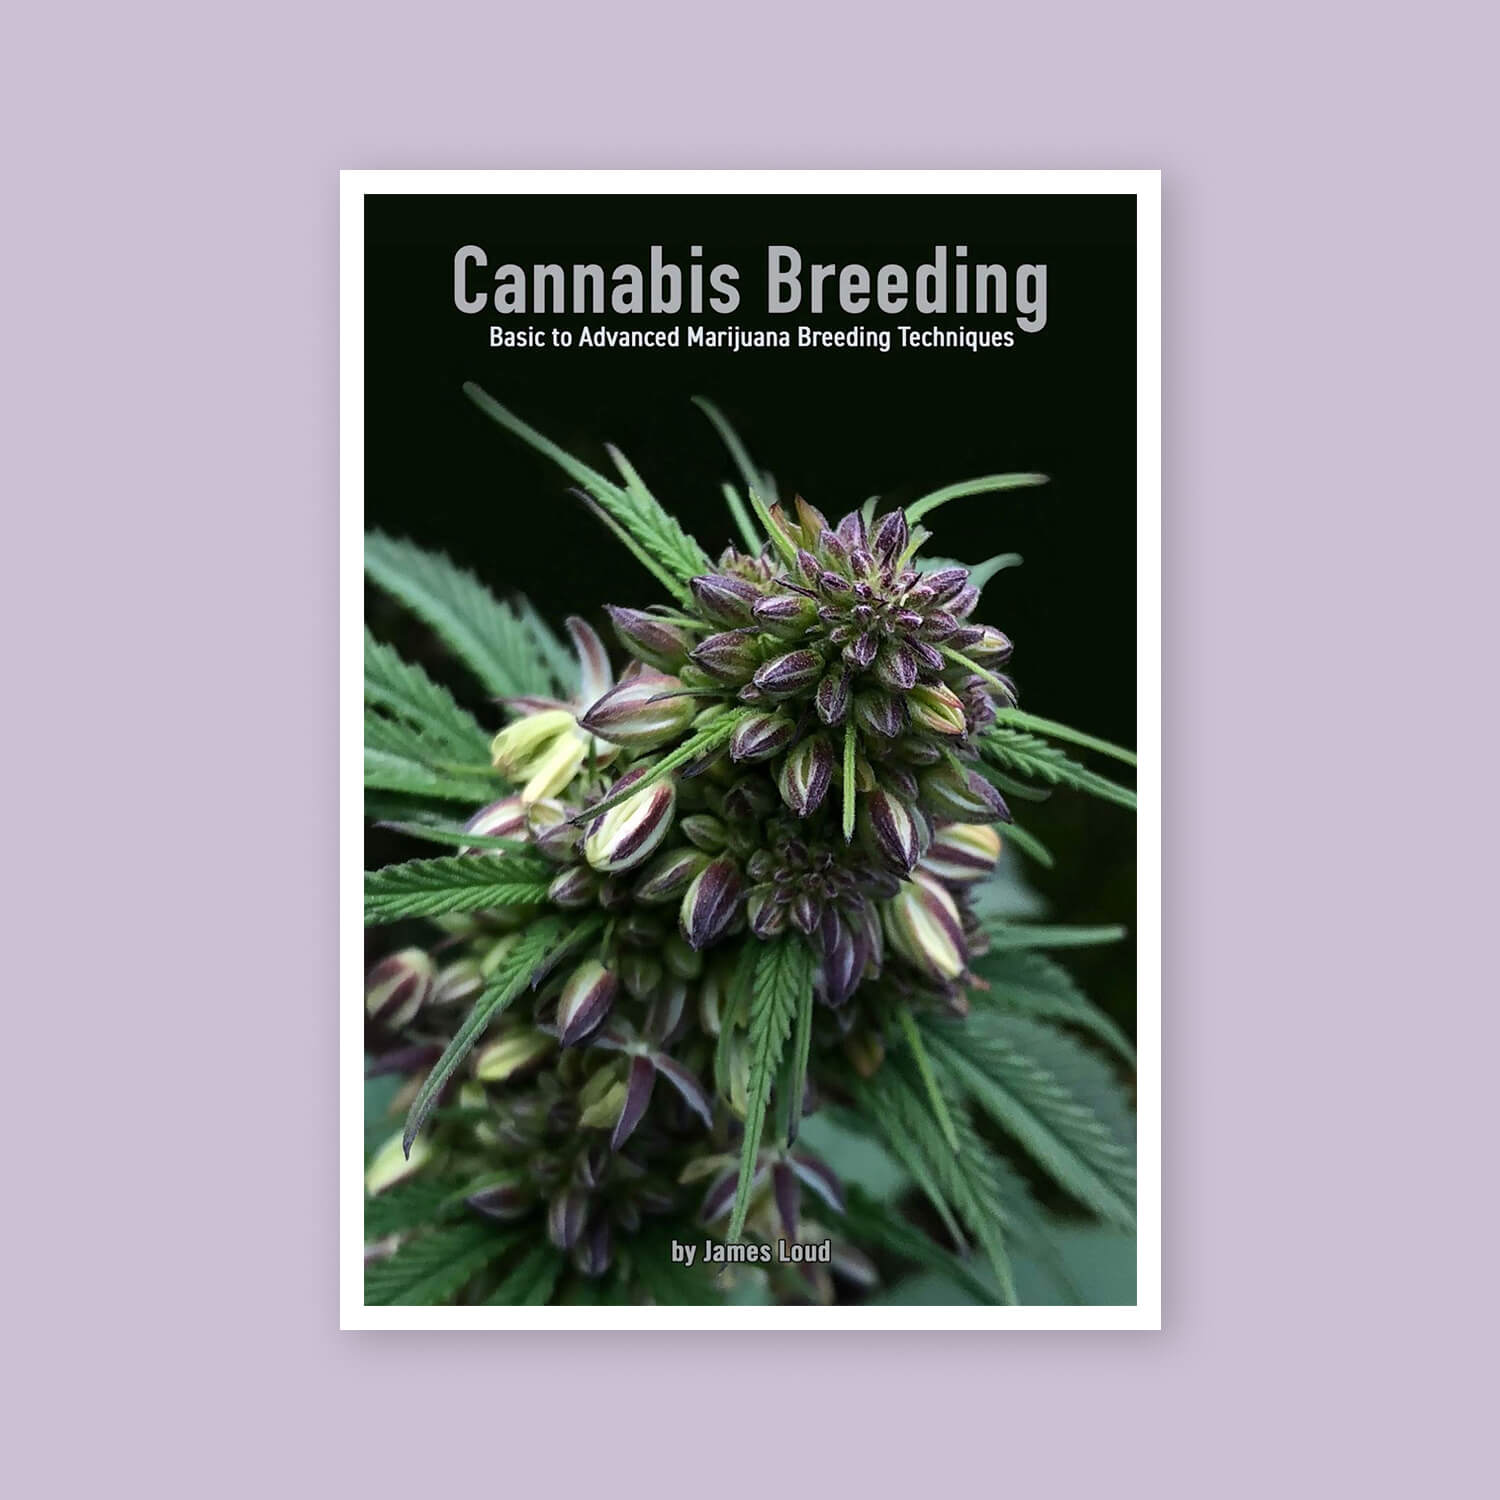 Cannabis Breeding - Goldleaf Bookshelf